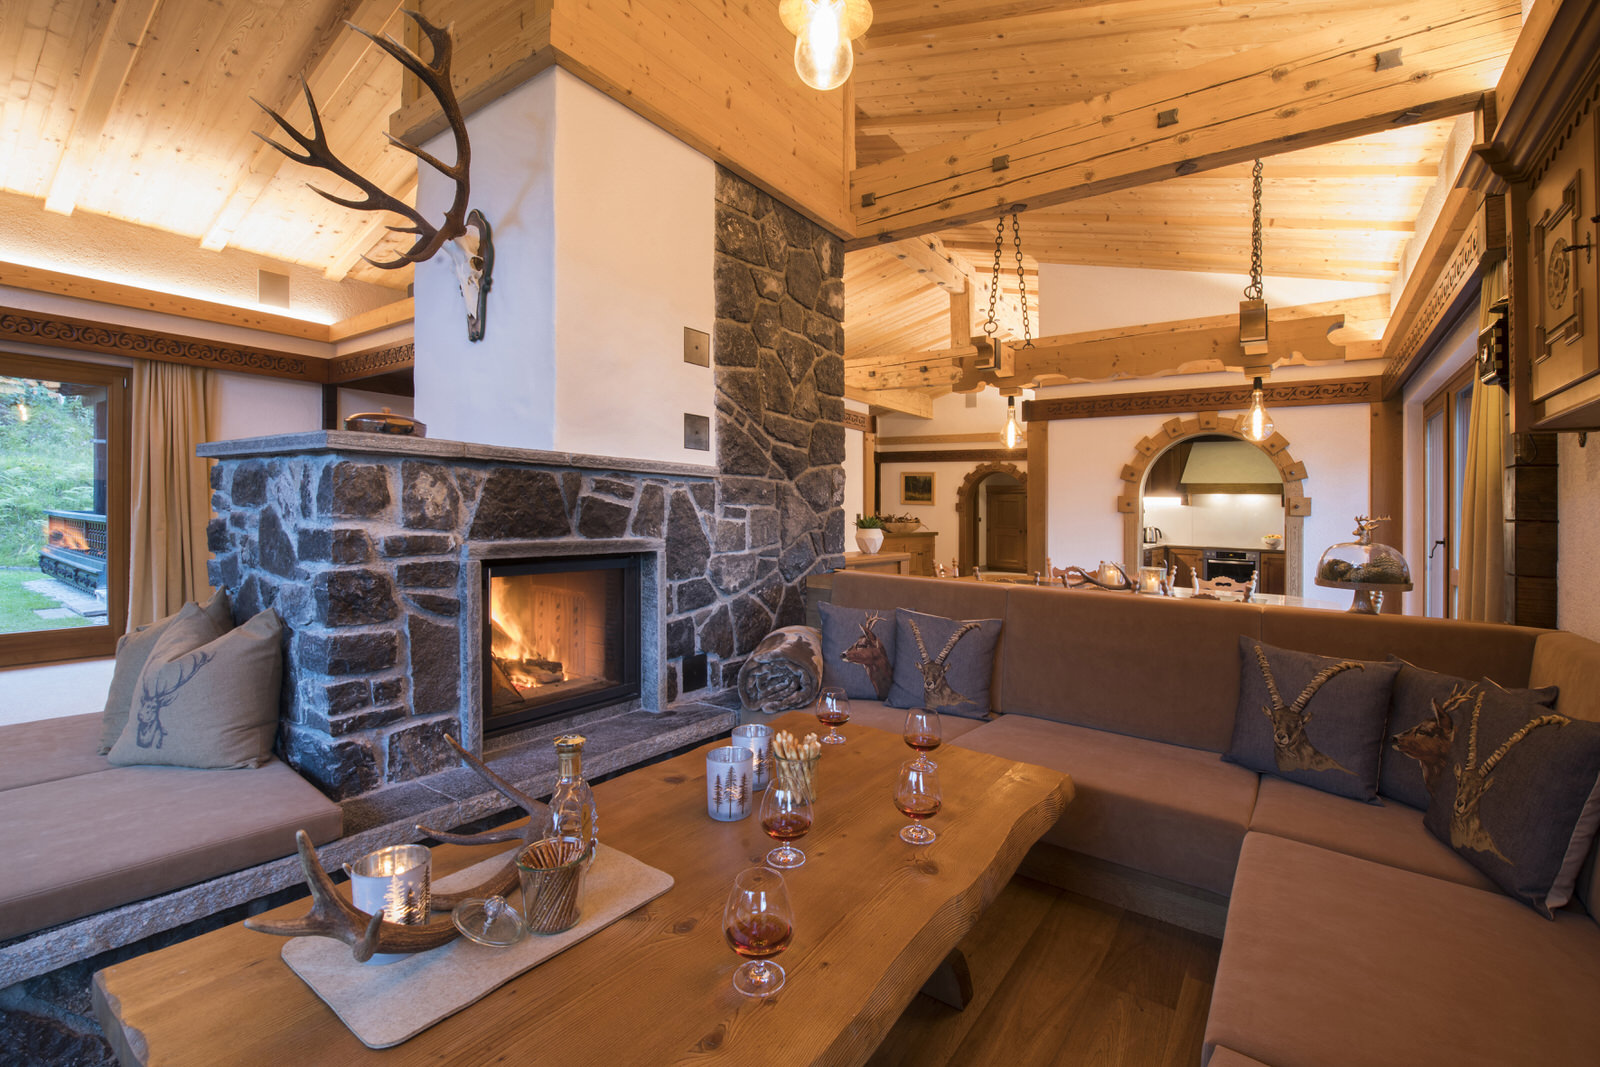 Rappakopf Forrest house in the Montafon - living